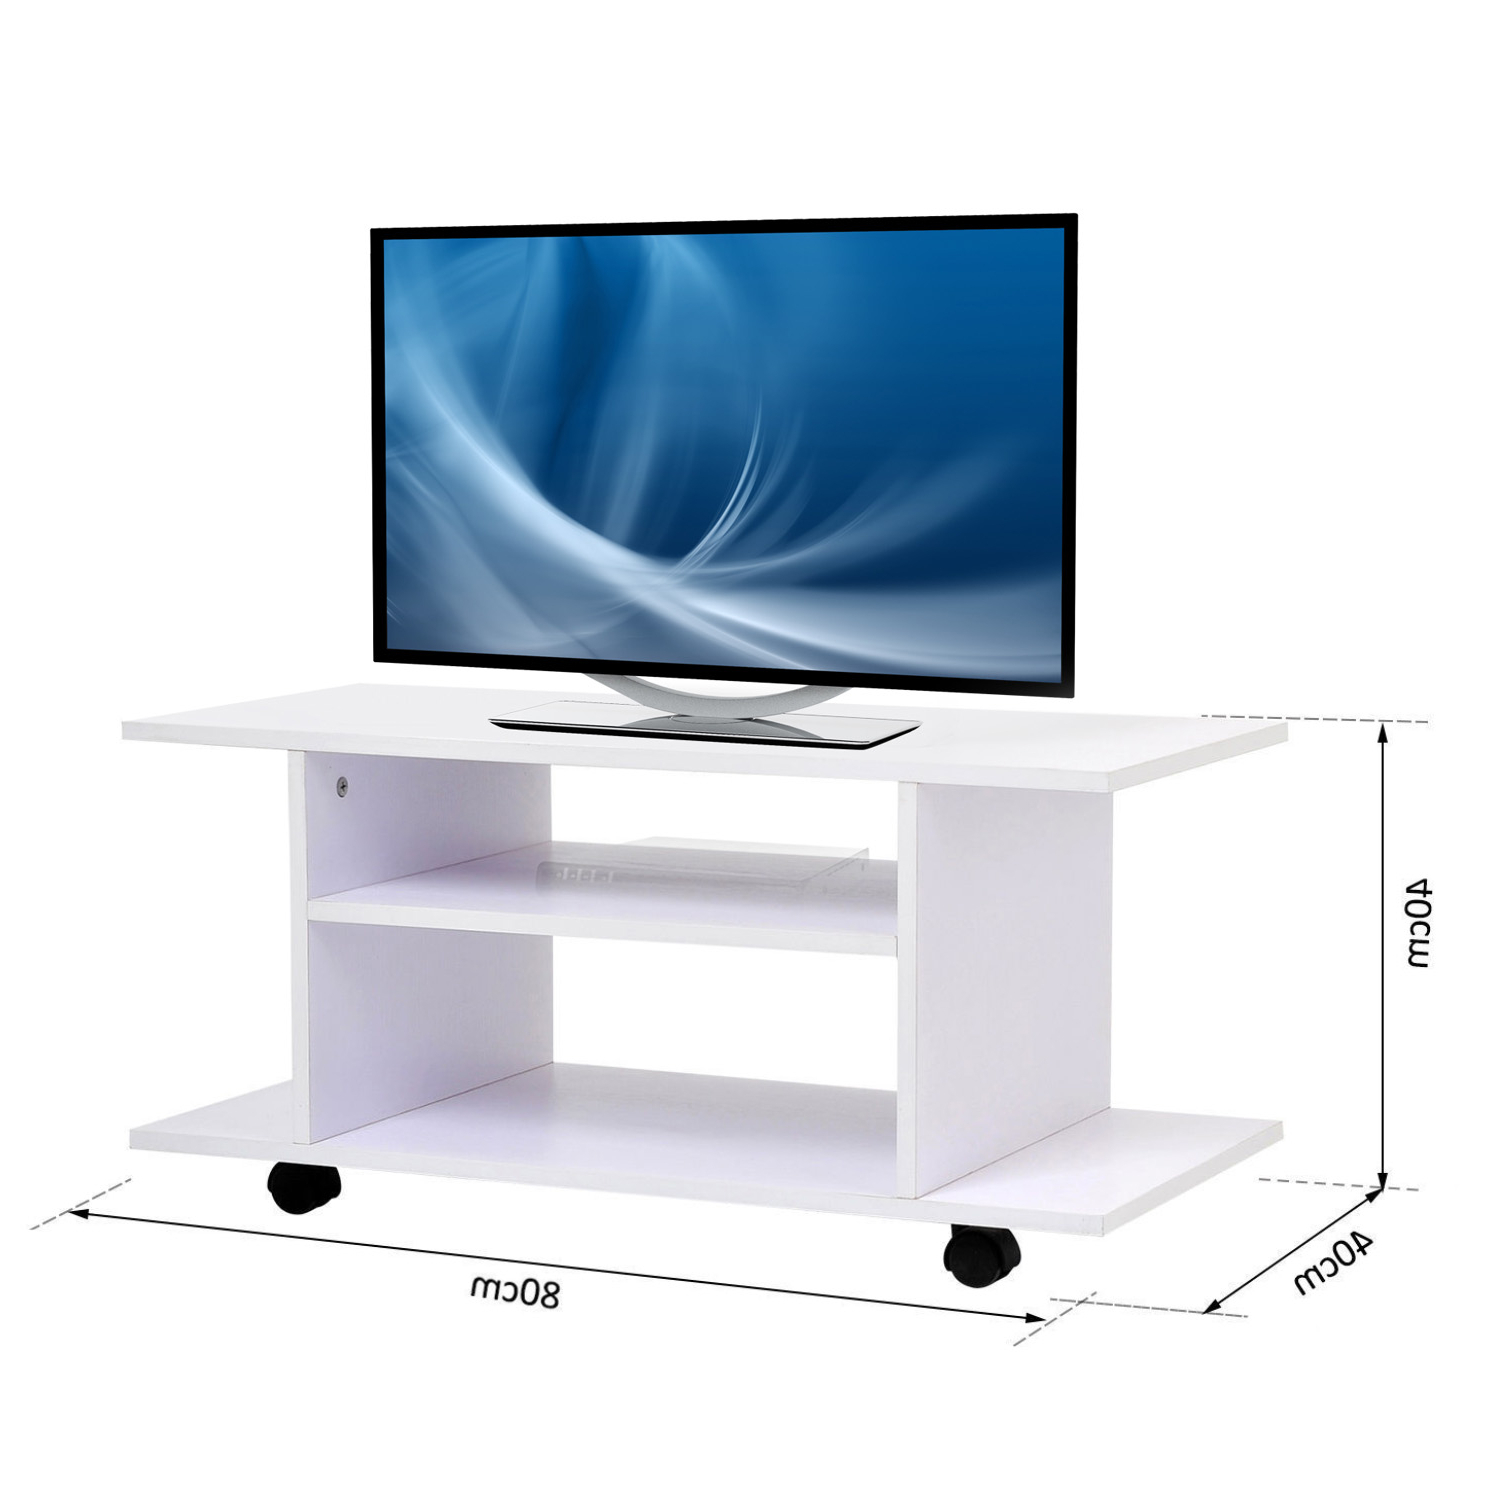 Modern Tv Cabinet Stand 3 Tier Shelf Storage Shelves Table With Regard To Modern Black Tv Stands On Wheels (View 14 of 20)